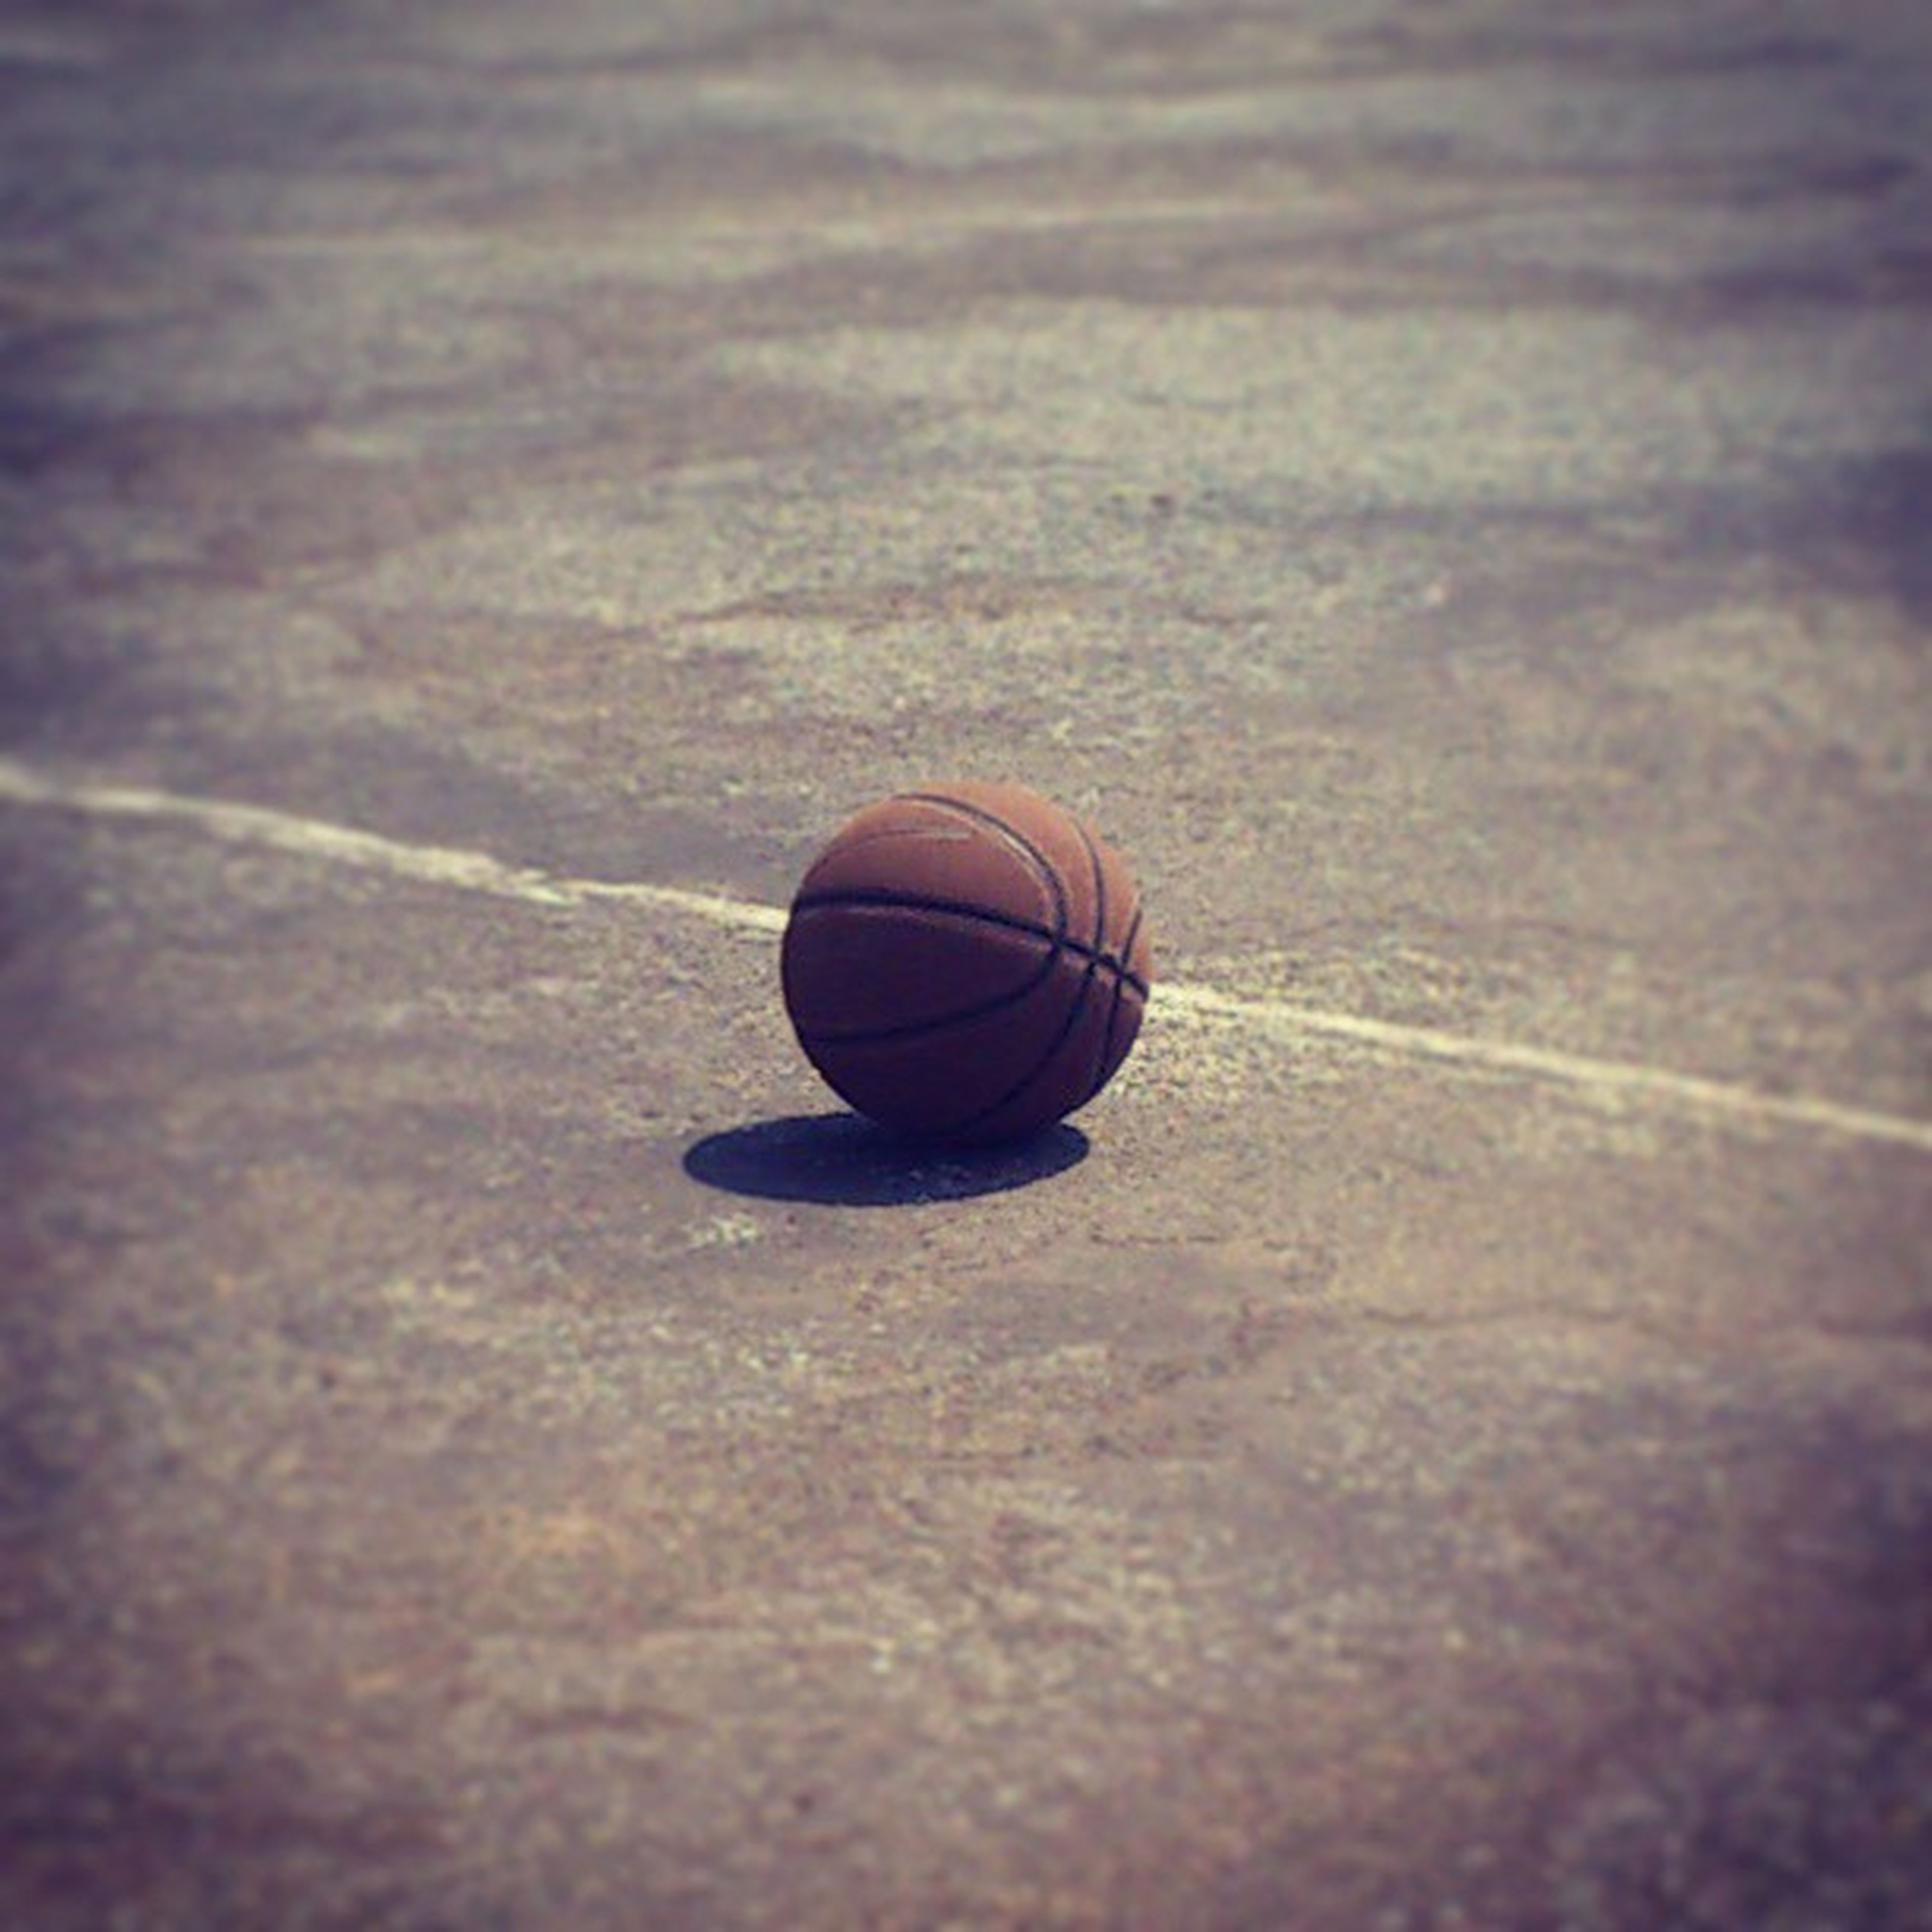 single object, circle, close-up, still life, high angle view, selective focus, no people, indoors, metal, geometric shape, day, shadow, focus on foreground, man made object, sphere, pattern, lighting equipment, textured, sport